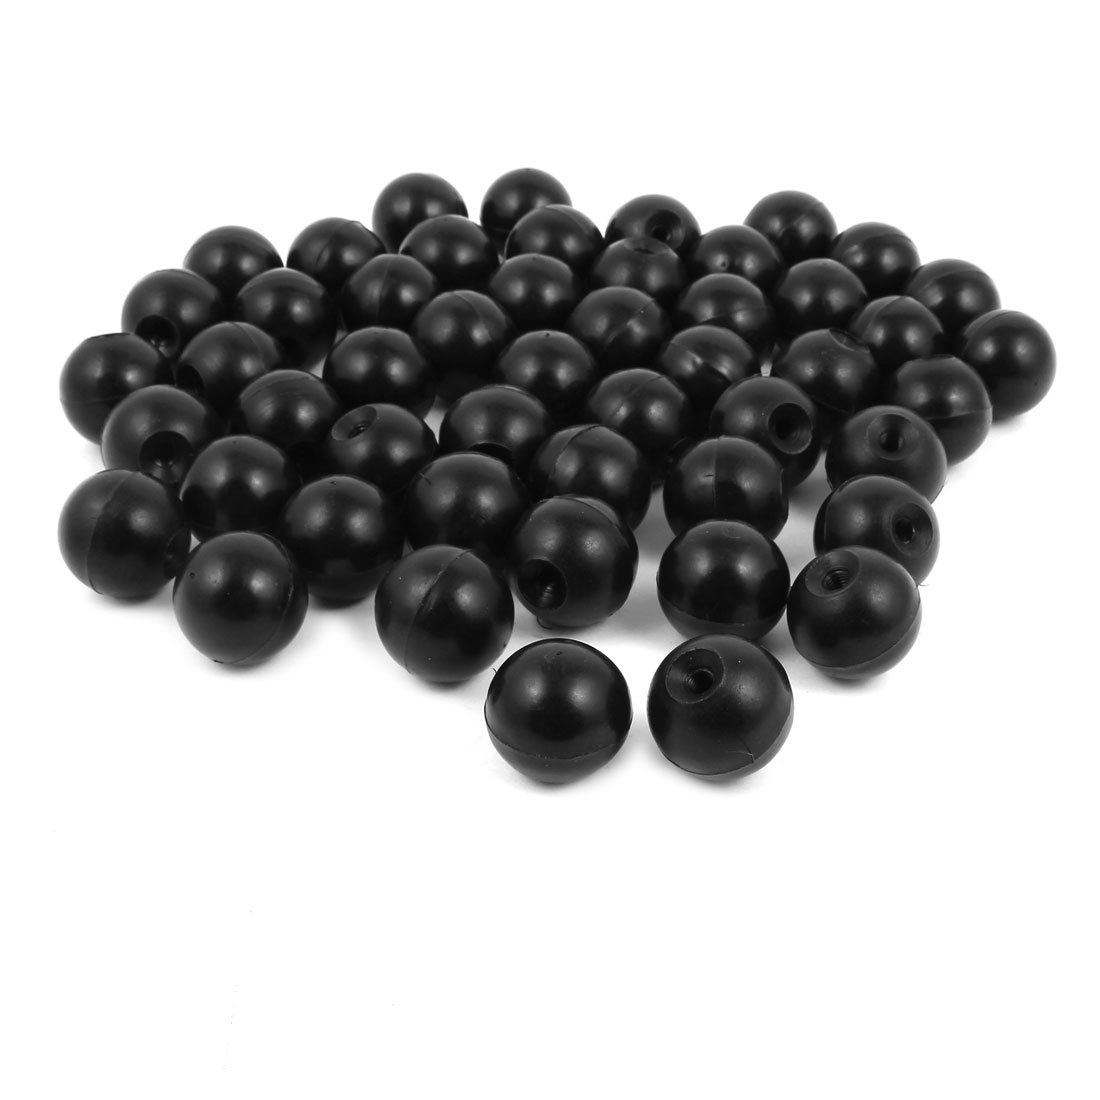 50Pcs Black Plastic Round Handle Ball Knob M6 Threaded 30mm Dia Machine Tools